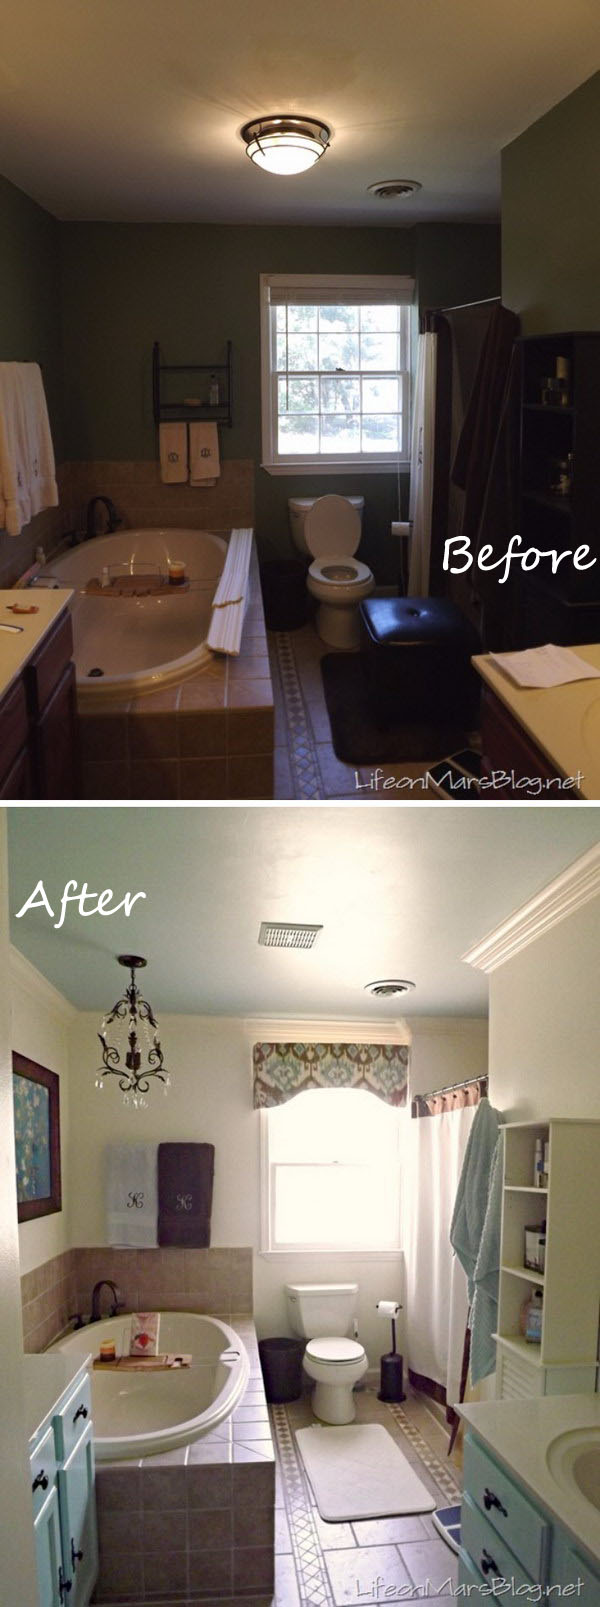 19-20-bathroom-remodel-before-and-after